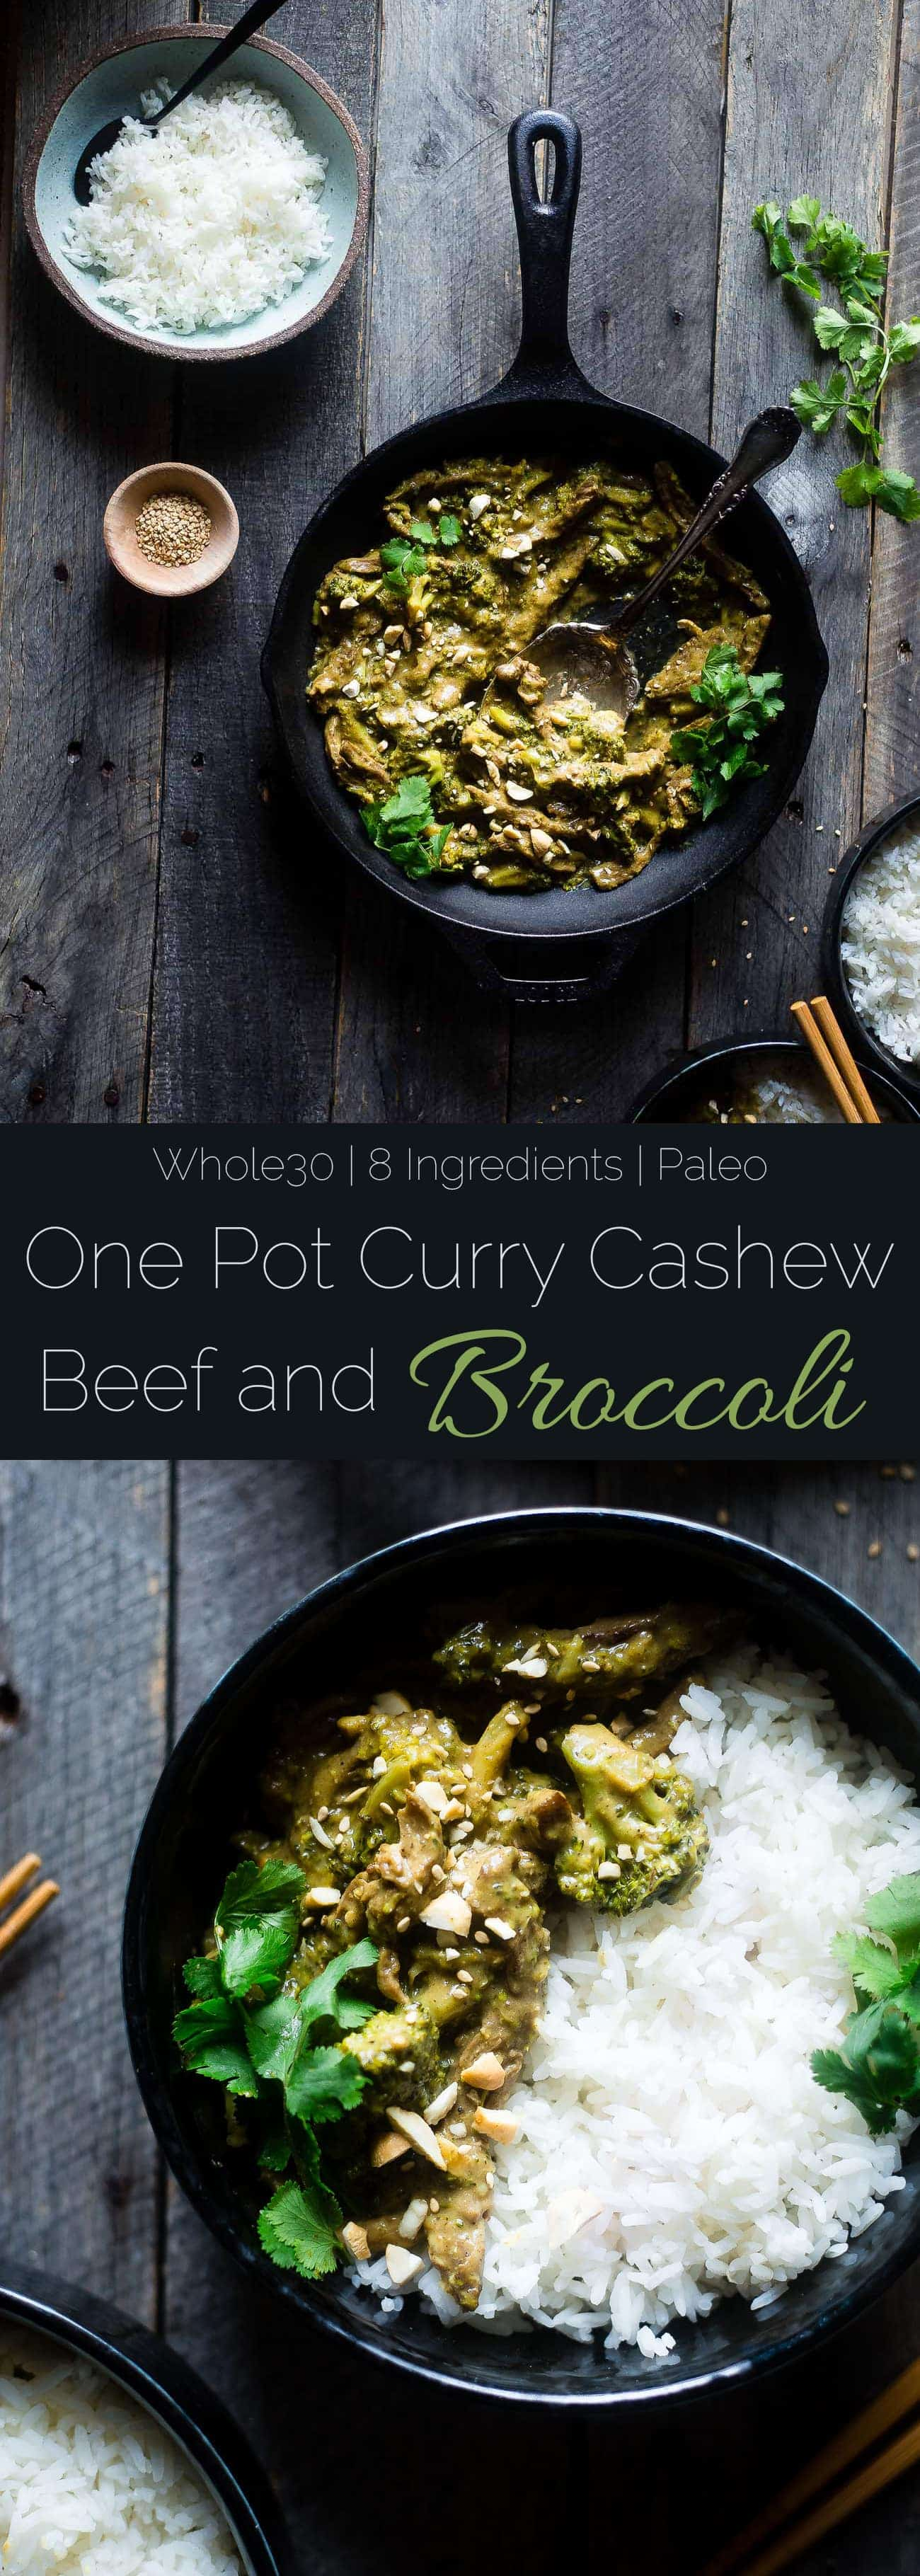 Whole30 Cashew Curry Beef and Broccoli - This quick and easy one pot curry beef and broccoli has creamy coconut milk and cashew butter! It's a healthy, low carb and whole30 approved weeknight meal! | Foodfaithfitness.com | @FoodFaithFit